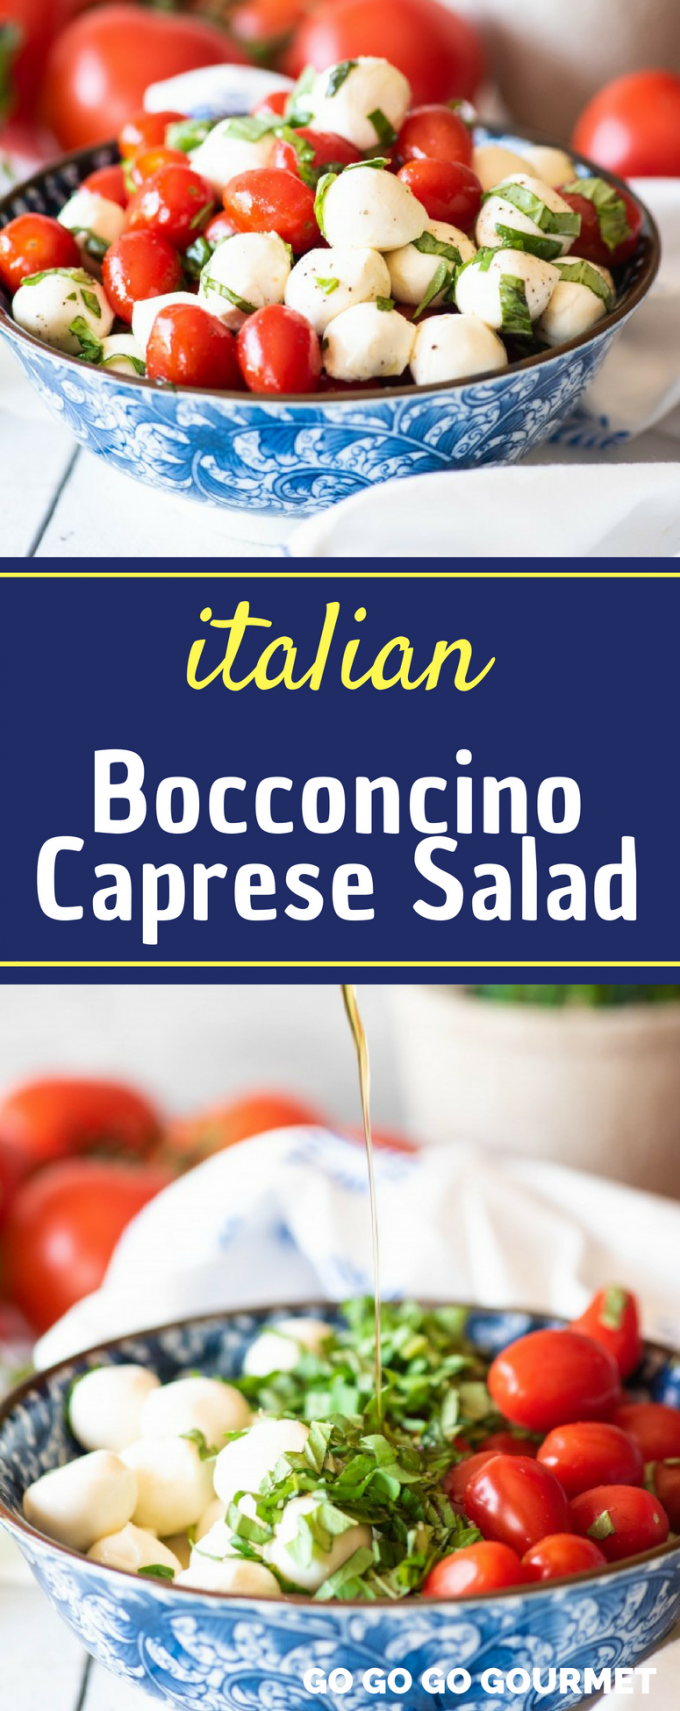 This easy Bocconcino Caprese Salad recipe is the best appetizer for a crowd! With tons of authentic flavor, and balsamic glaze for the dressing, it just can't be beat. It would even be great with grilled chicken, or mixed in some pasta! #bocconcinocapresesalad #capresesalad #easysummerrecipes #italiancapresesalad #gogogogourmet